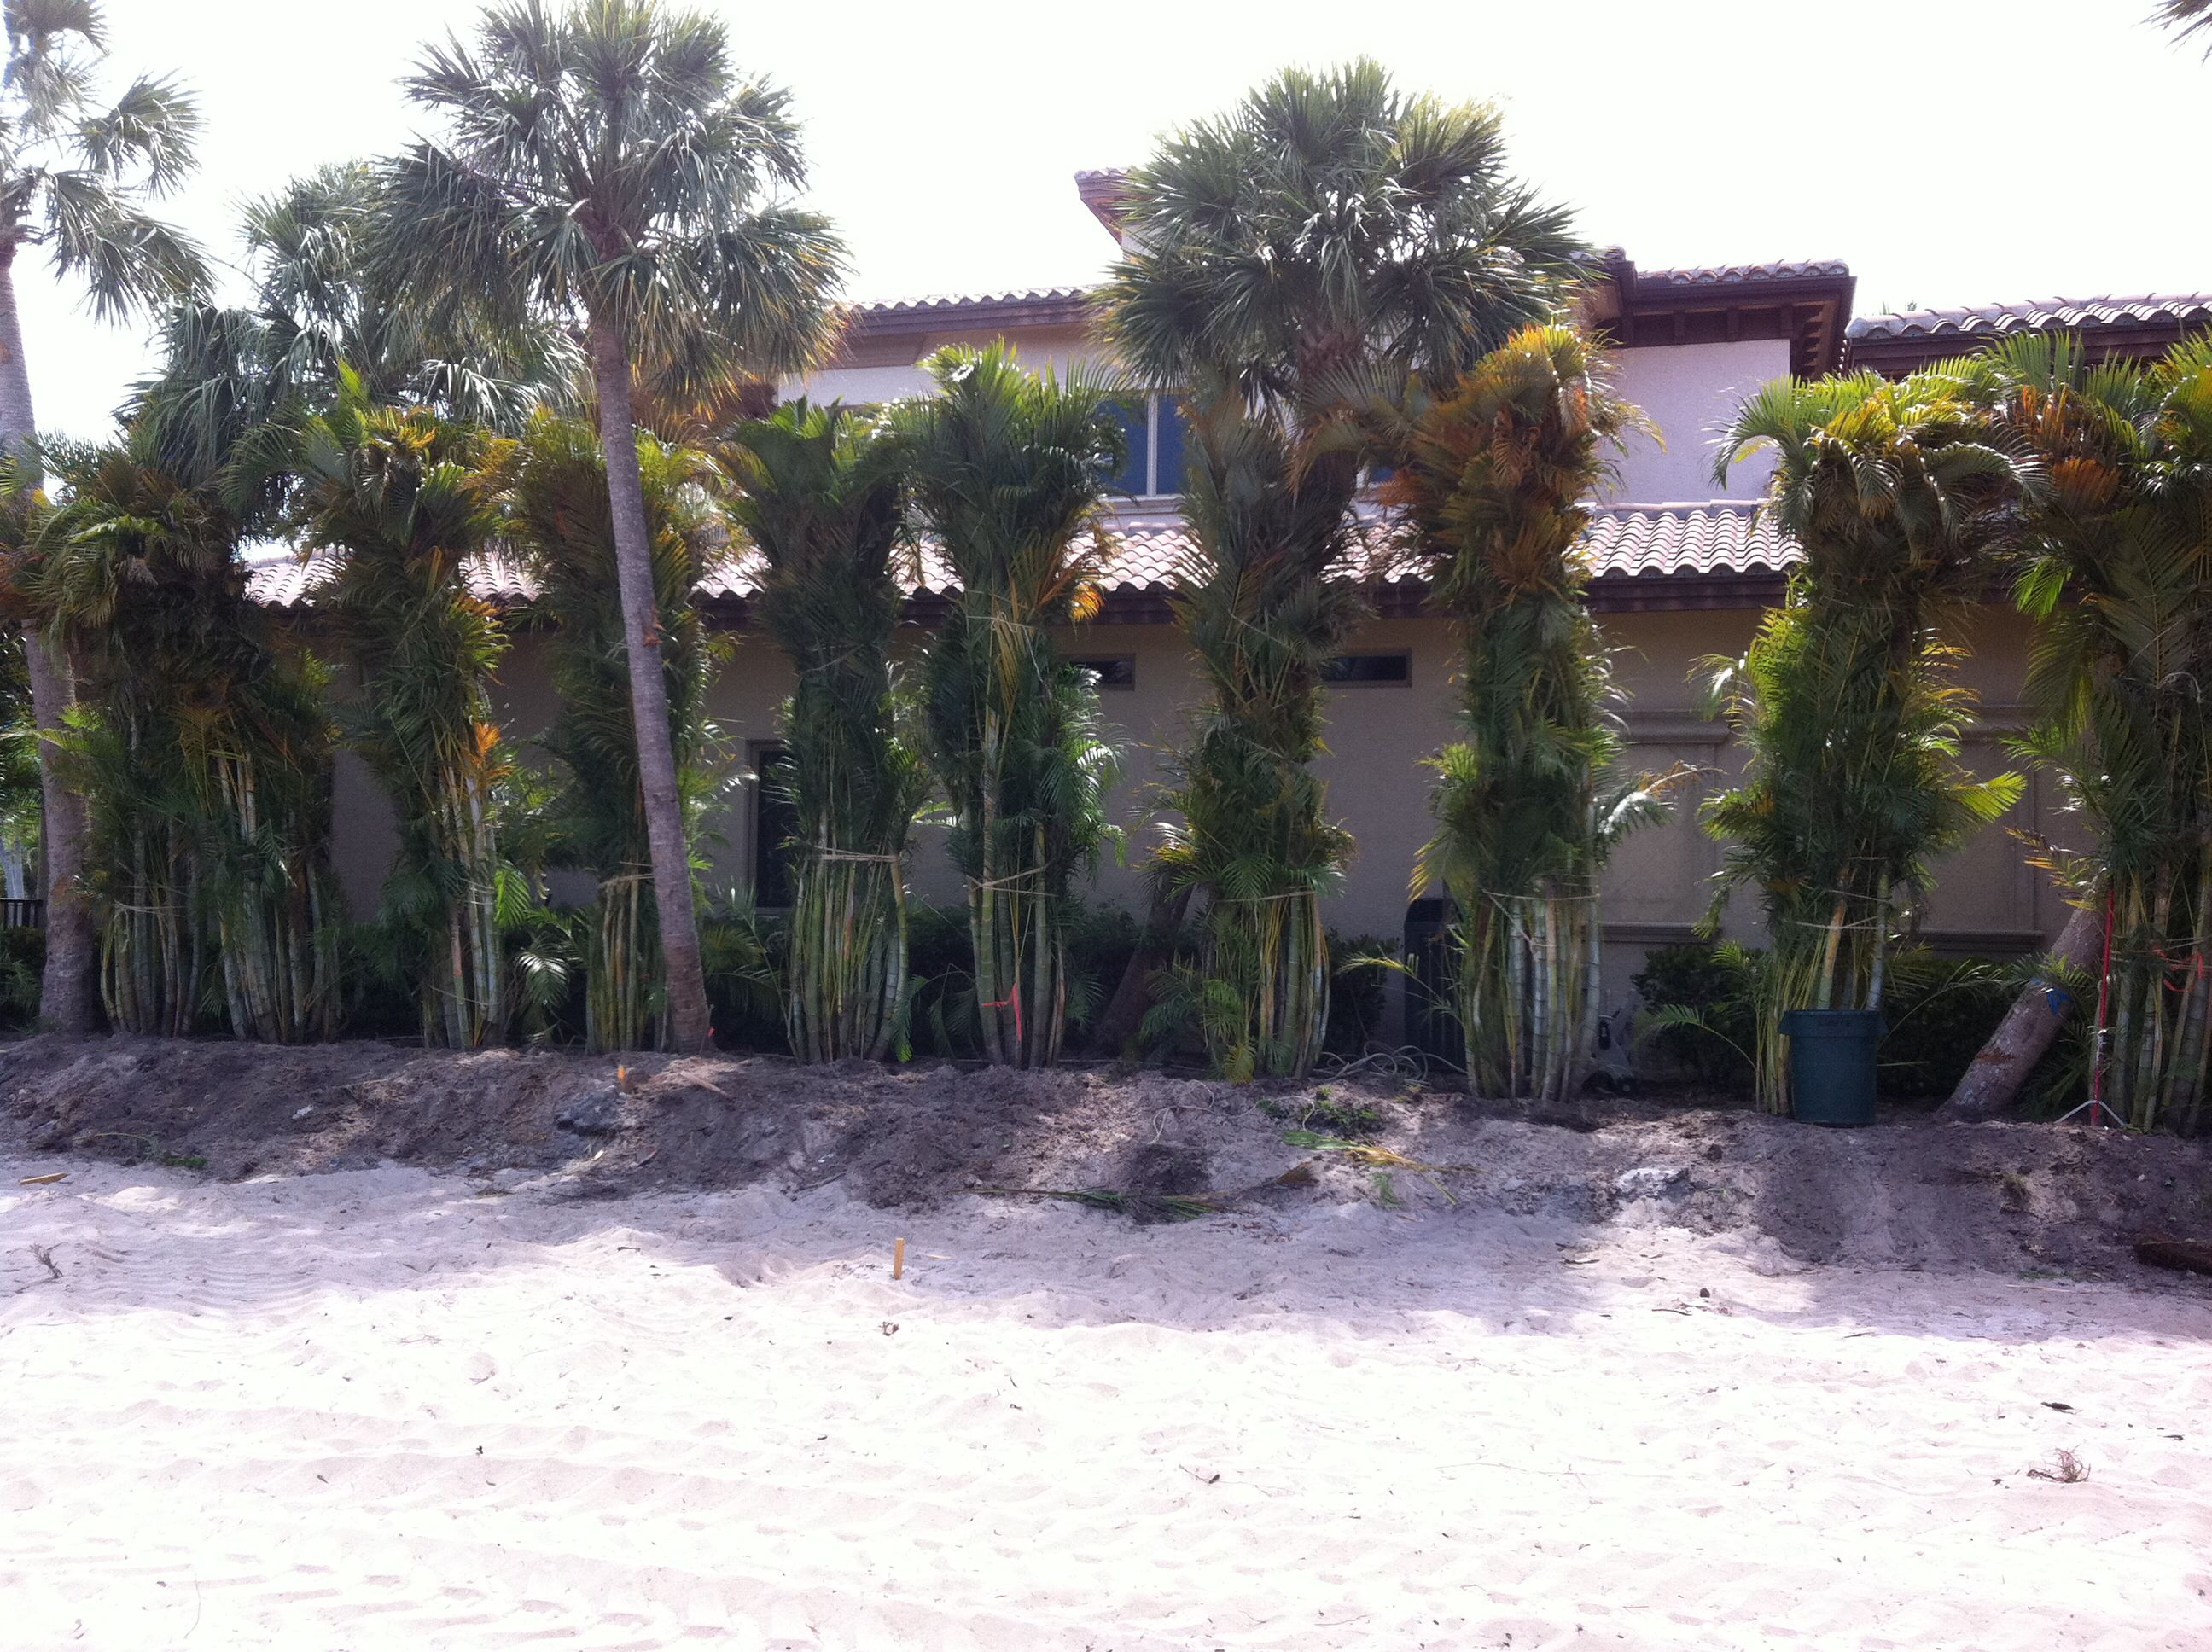 Areca palm install for privacy my landscape designs